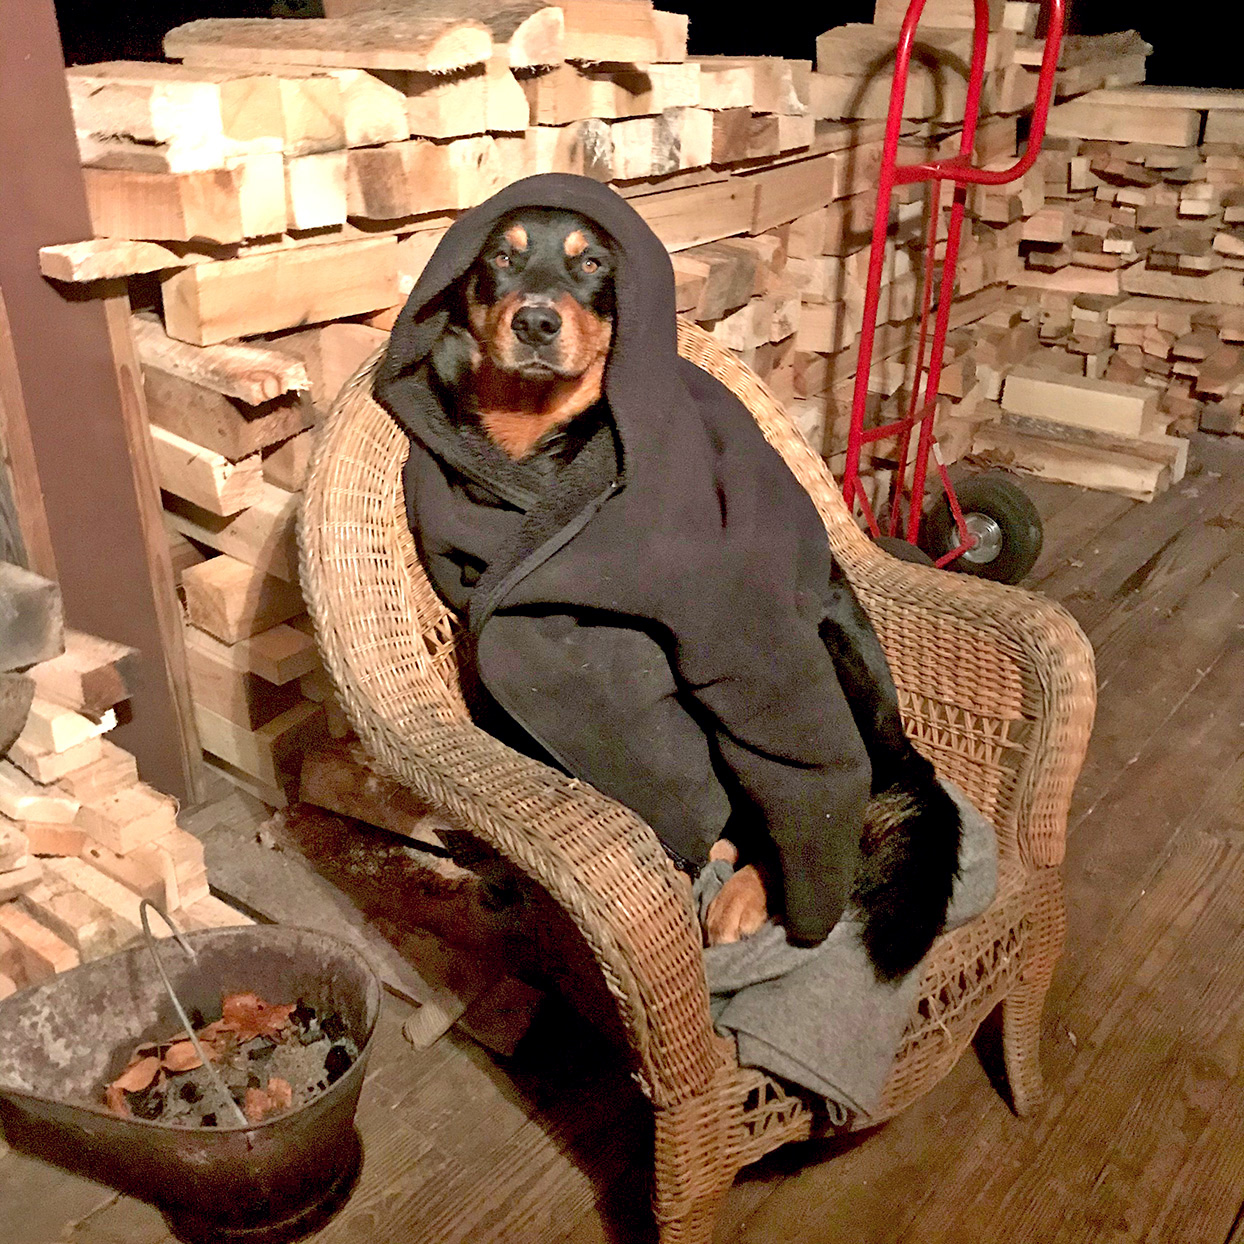 Rottweiler sits in wicker chair covered in blanket